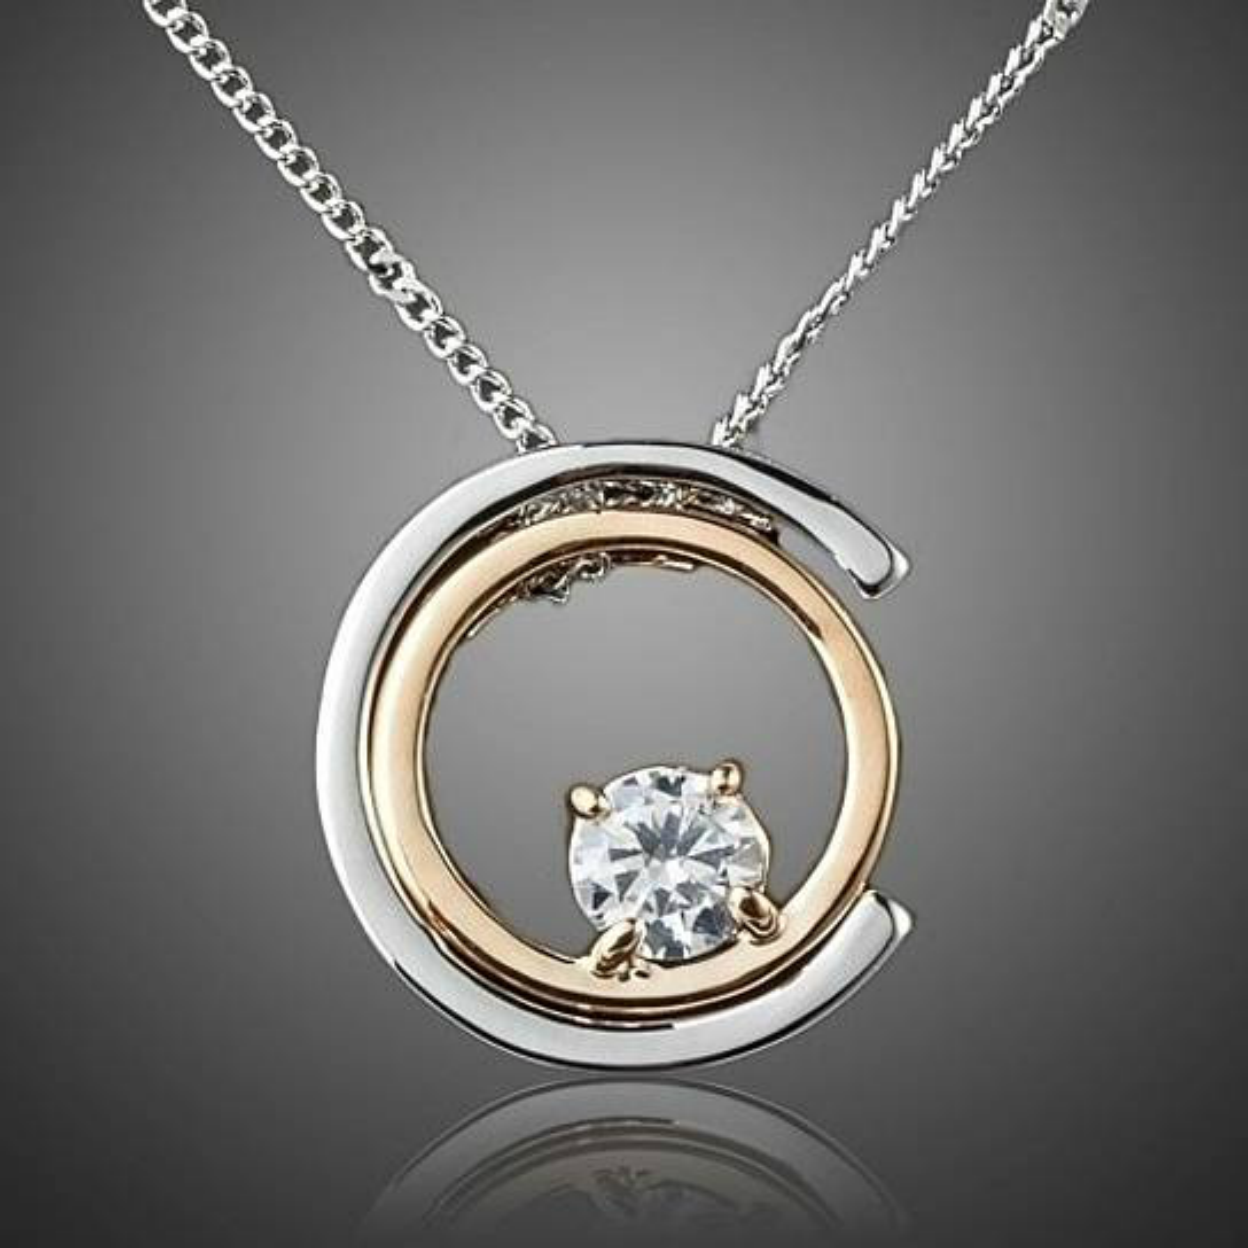 Classic White Gold and Gold Color Stellux Austrian Crystal Pendant Necklace 5967c85540f76c332d2b0c0e